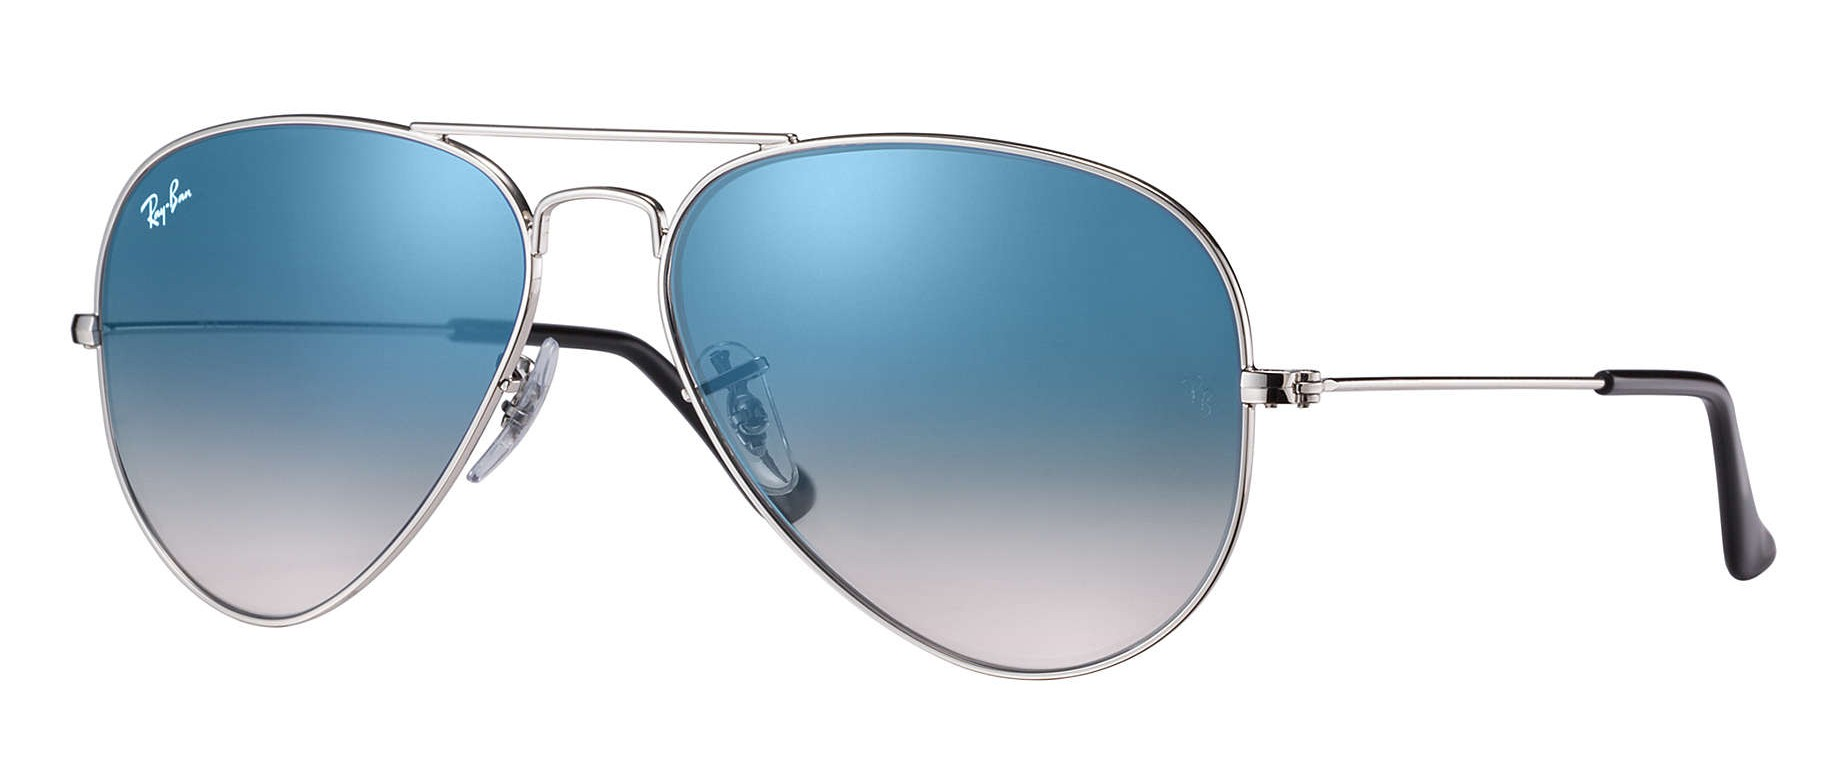 7b01eea21c Ray-Ban - RB3025 003 3F - Original Aviator Gradient- Silver - Light Blue  Gradient Lenses - Sunglass - Ray-Ban Eyewear - Avvenice